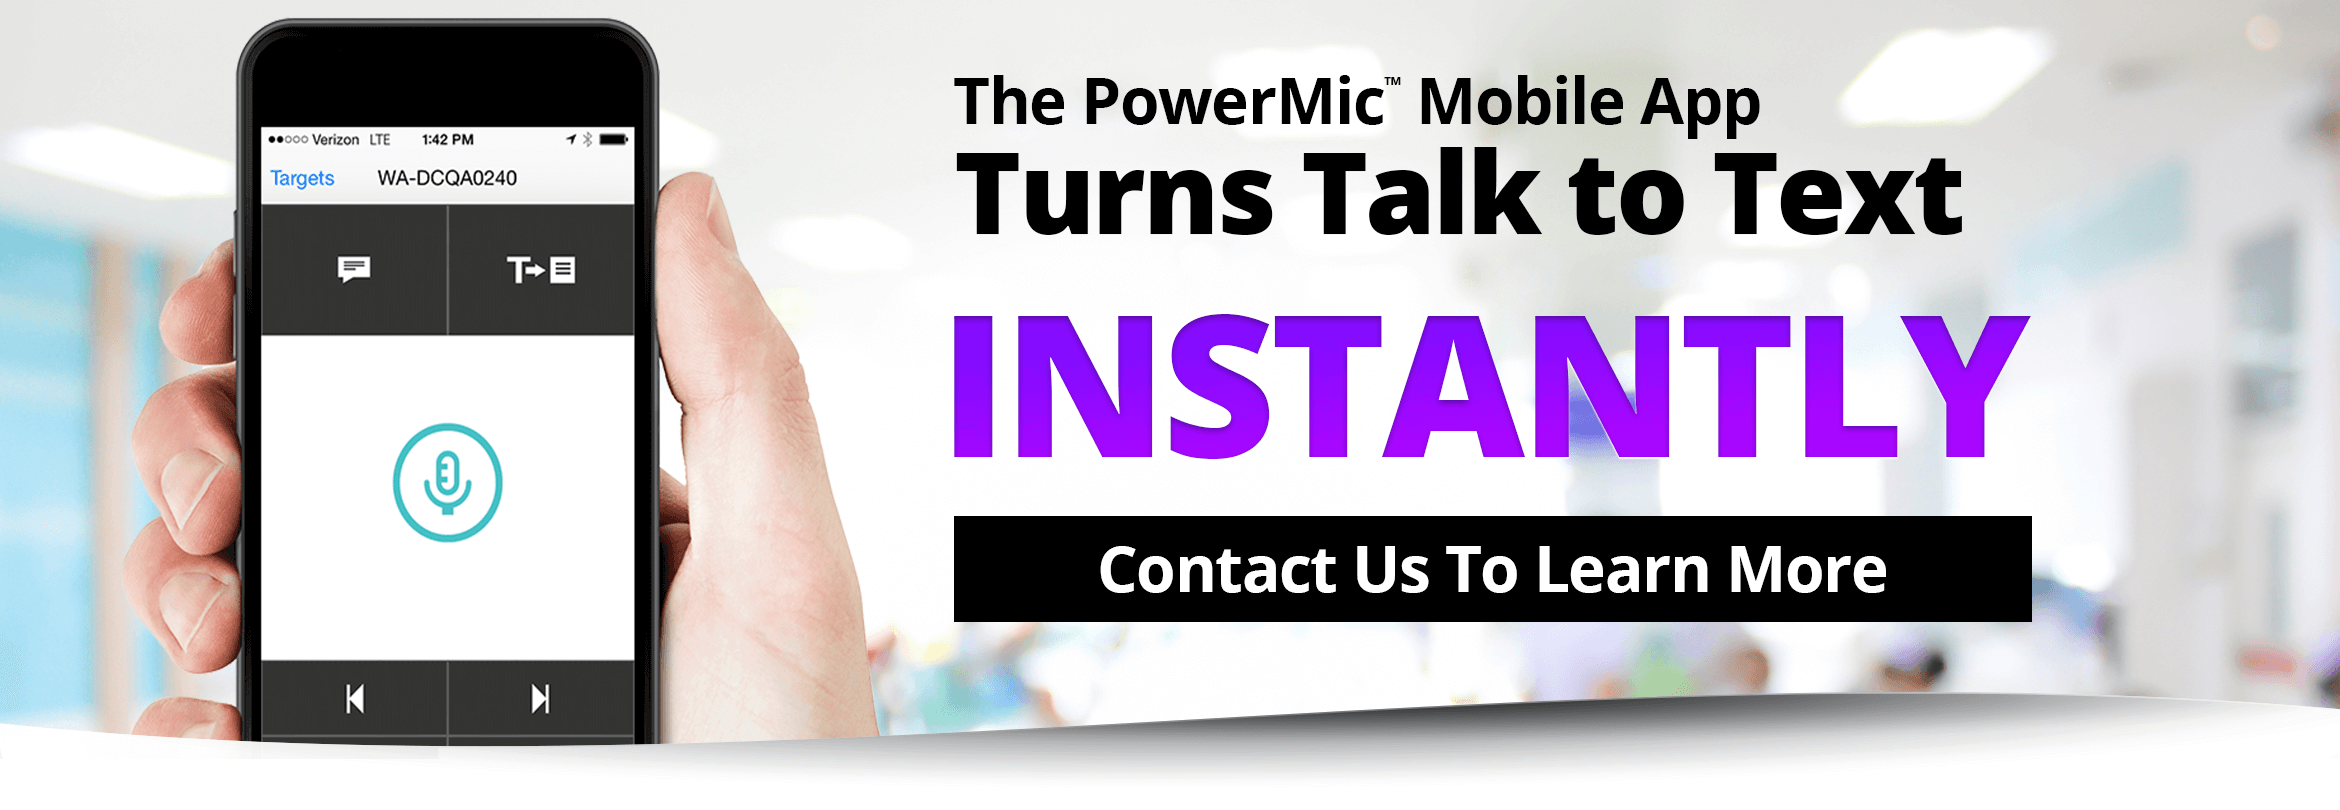 The PowerMic Mobile App turns talk to text instantly